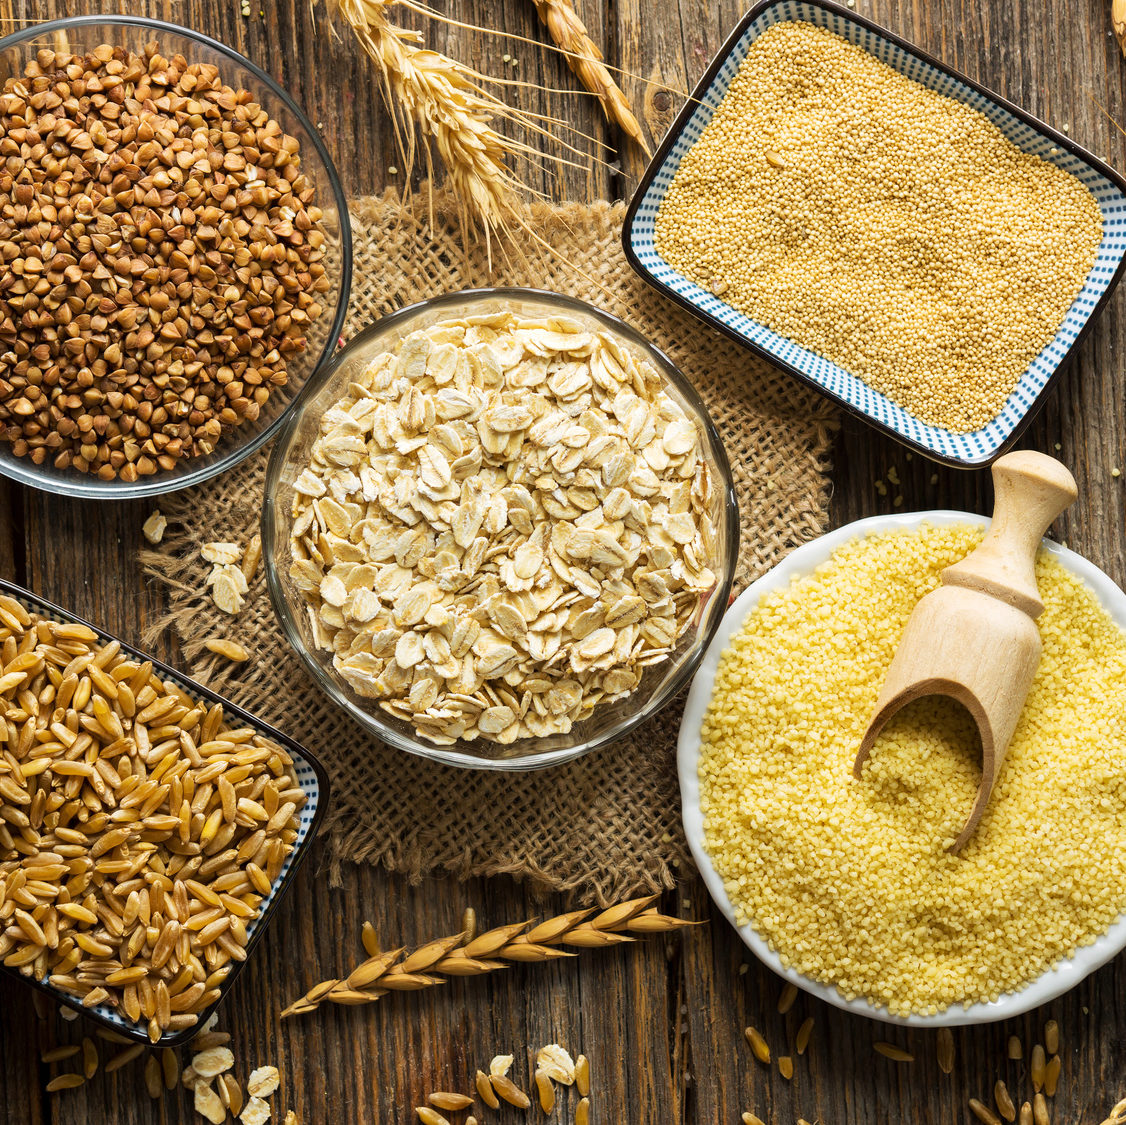 whole grains improve fertility